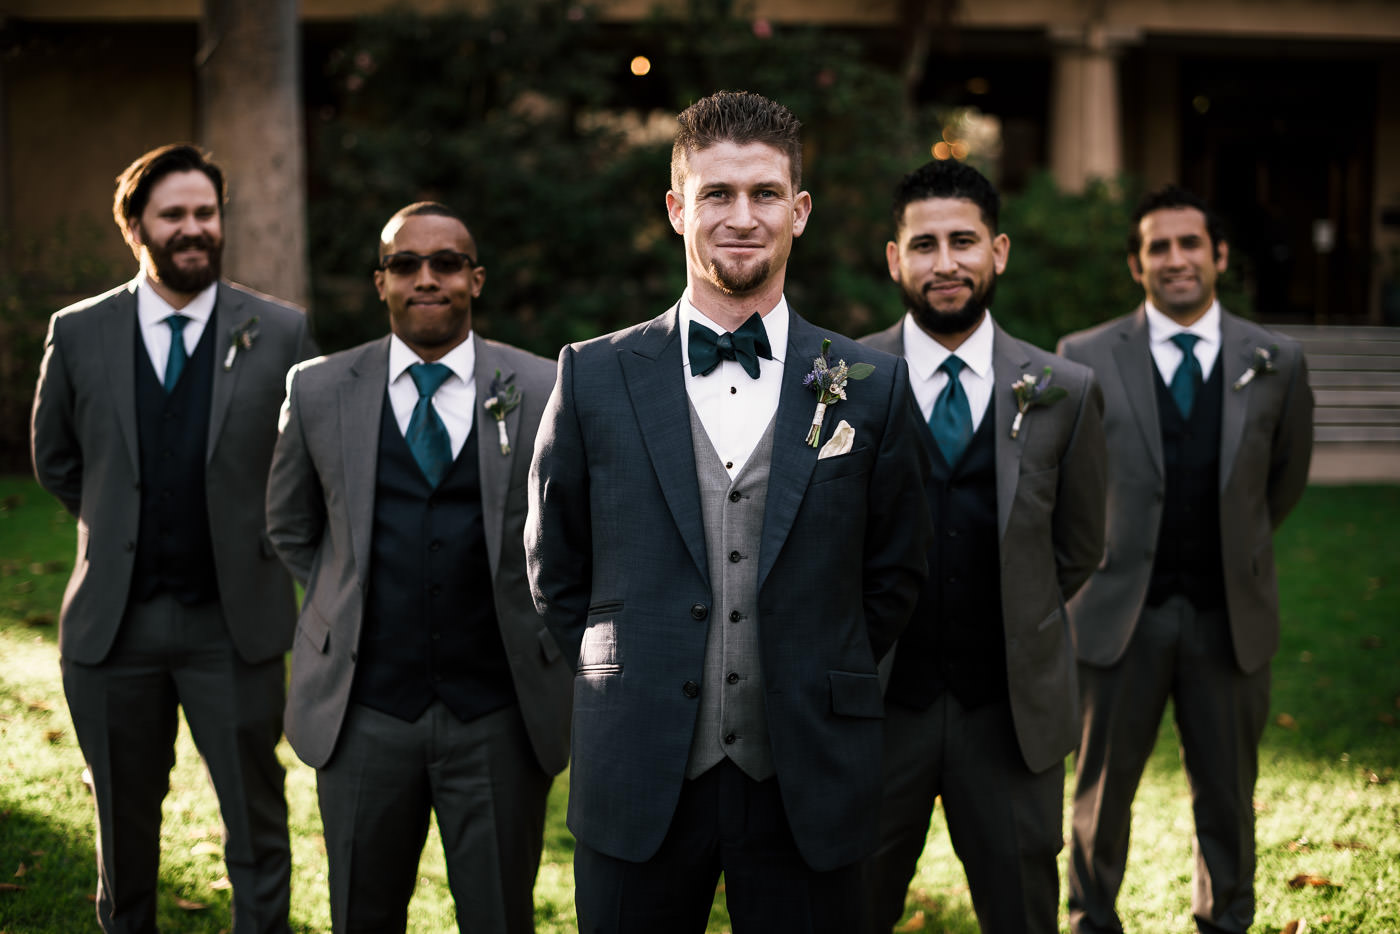 Grom stands with his groomsmen in the lawn of the Castle Green.